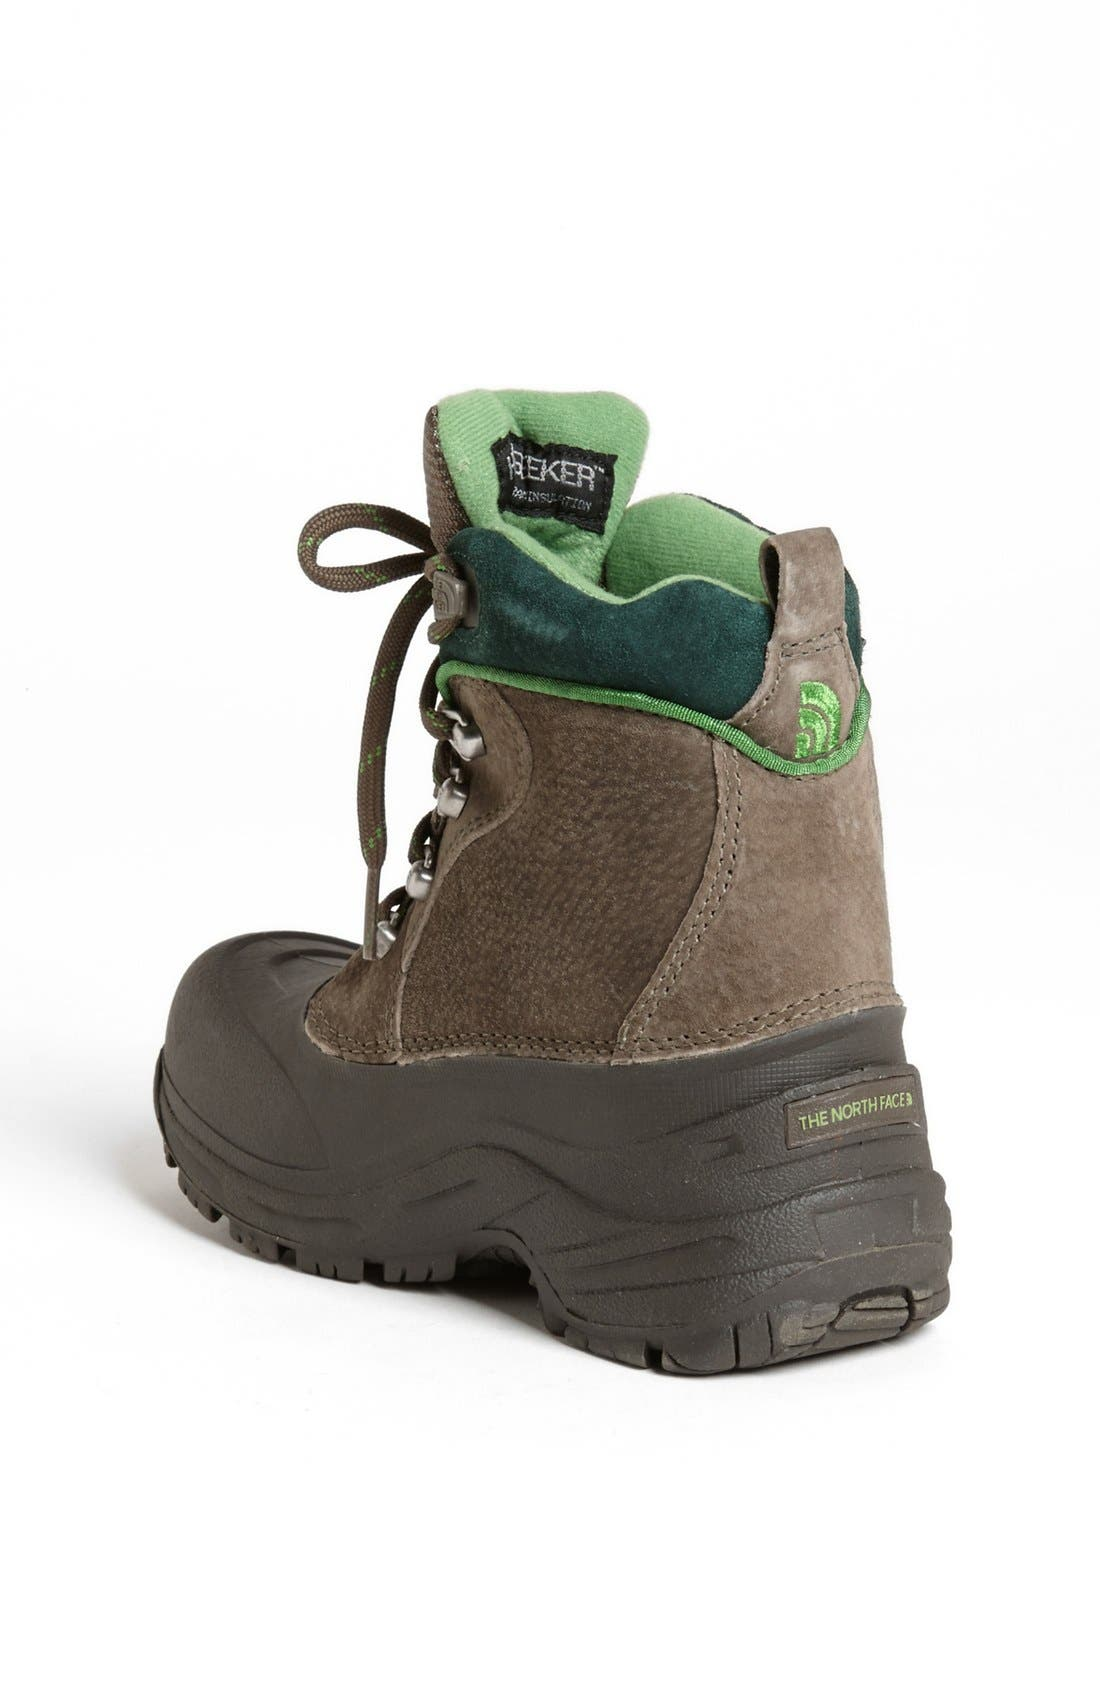 Alternate Image 2  - The North Face 'Chilkats' Lace Up Waterproof Snow Boot (Toddler, Little Kid & Big Kid)